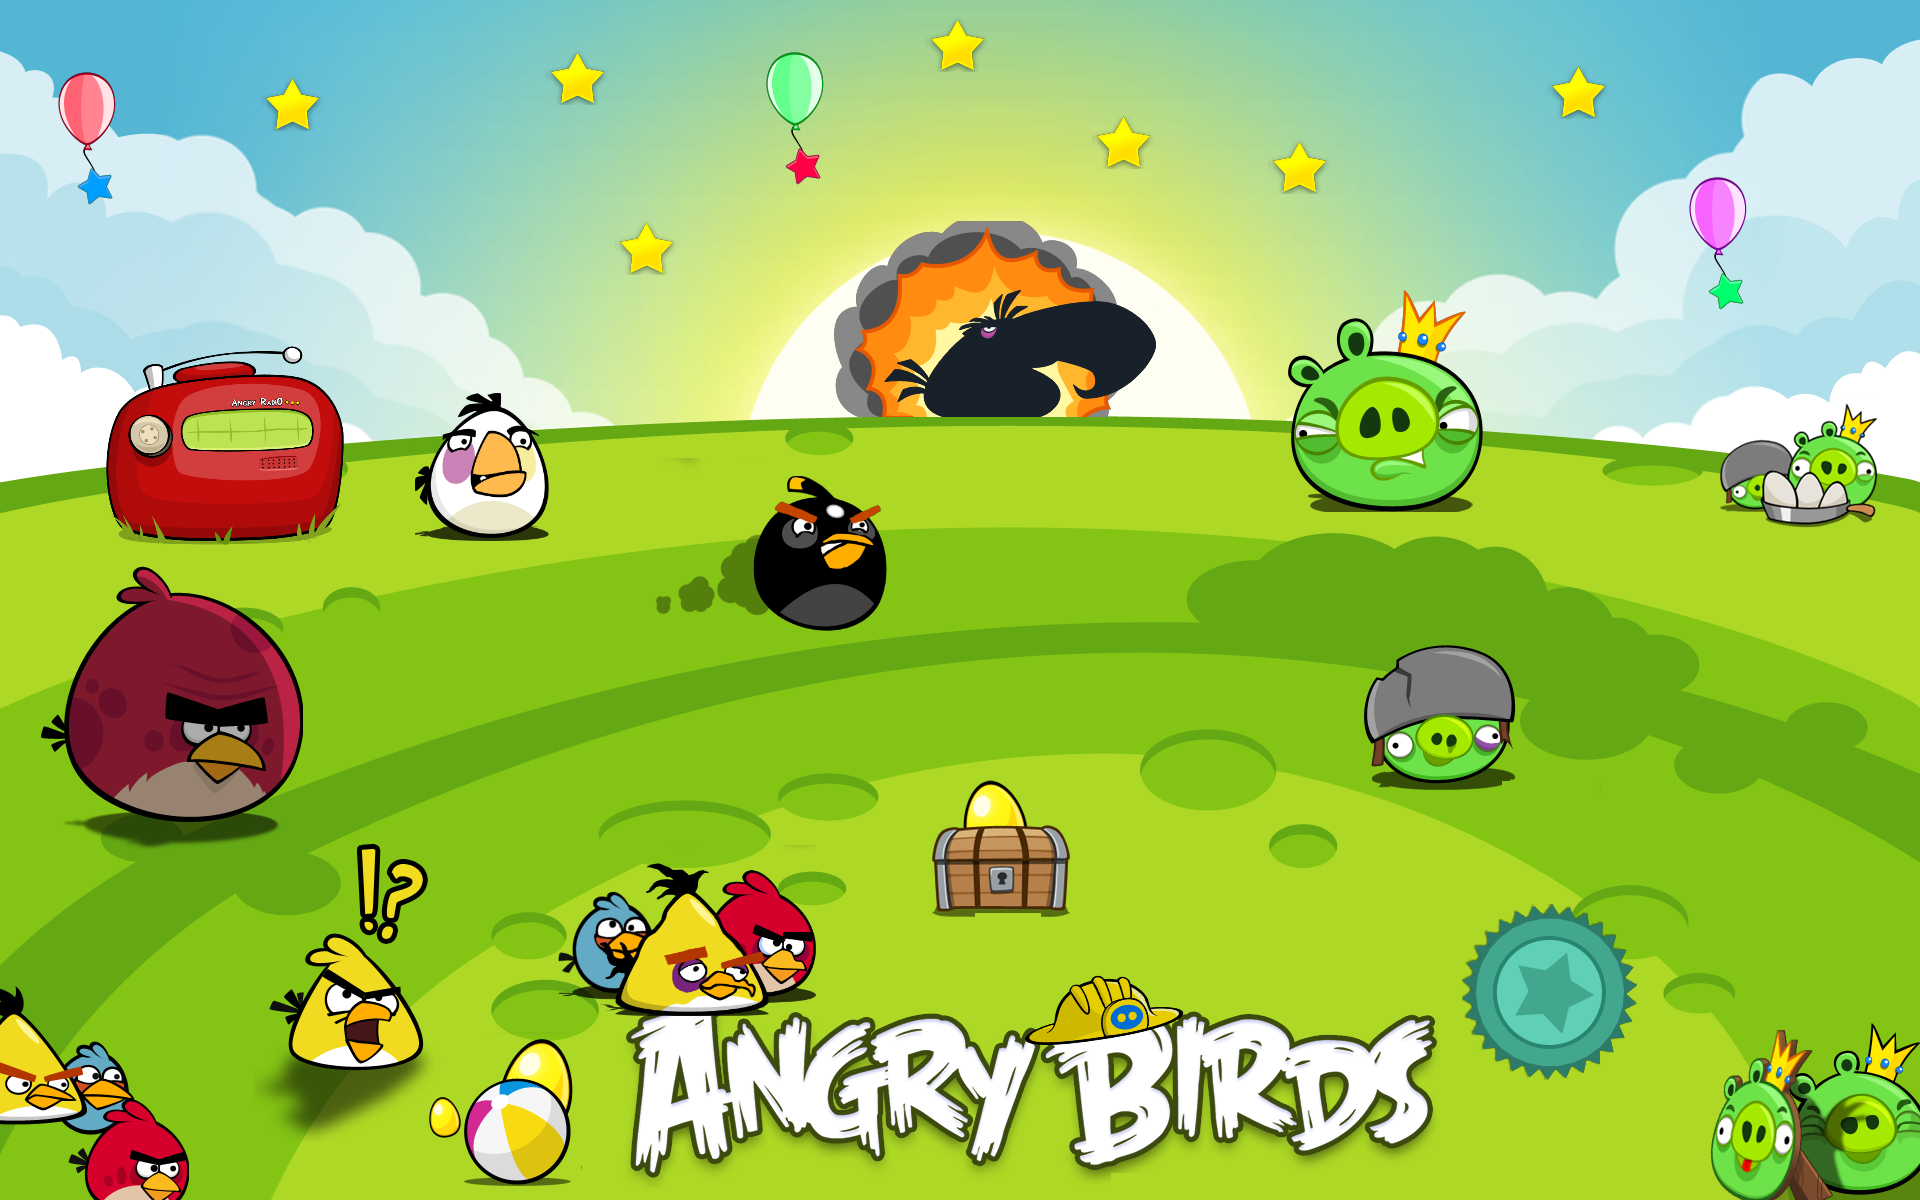 Angry Birds images Angry Birds Wallpaper HD wallpaper and background photos